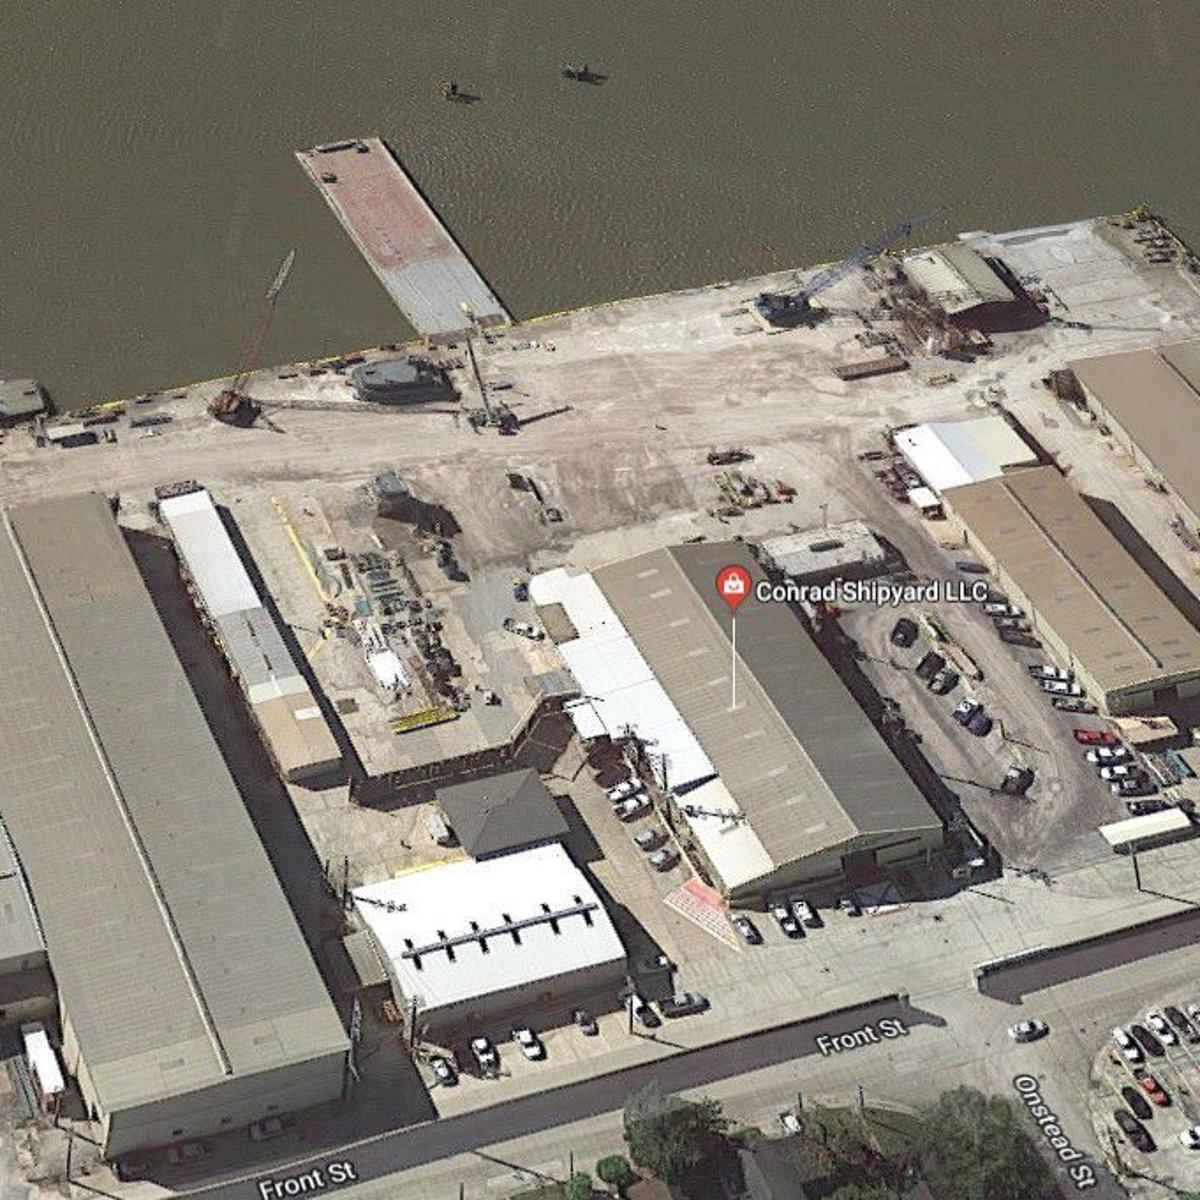 Conrad Shipyard files lawsuit for $18M claiming money is owed on tug